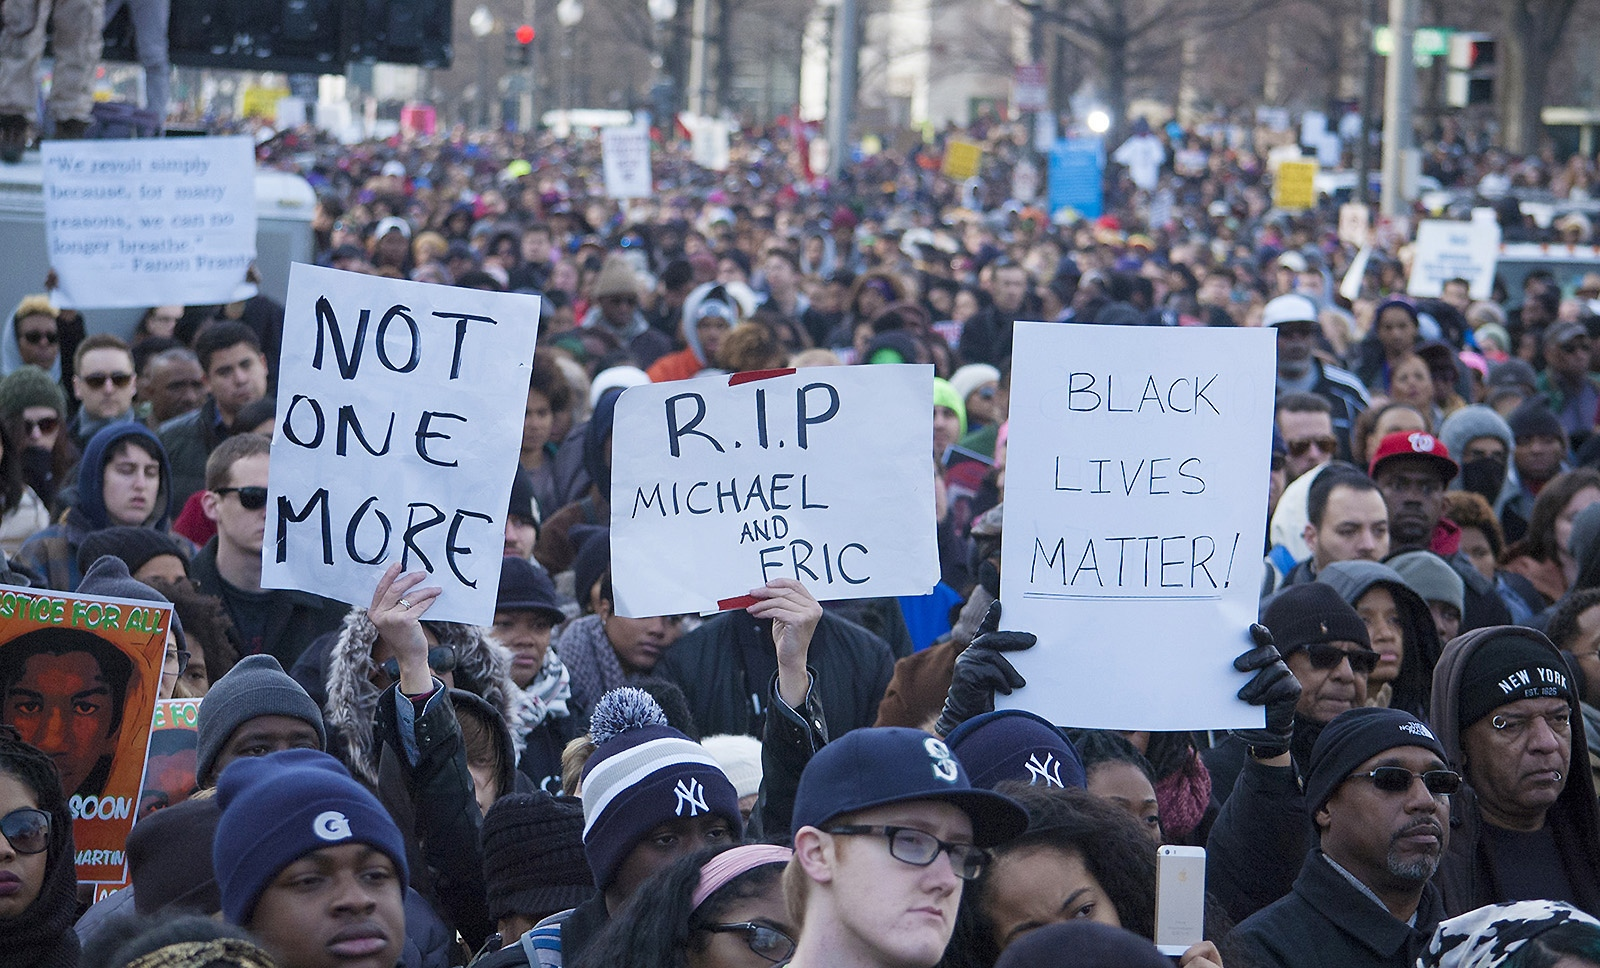 RALLY TO DEMAND JUSTICE FOR TREYVON MARTIN, MICHAEL BROWN, TOMIR RICE, ERIC GARNER, WASHINGTON, D.C., 2014